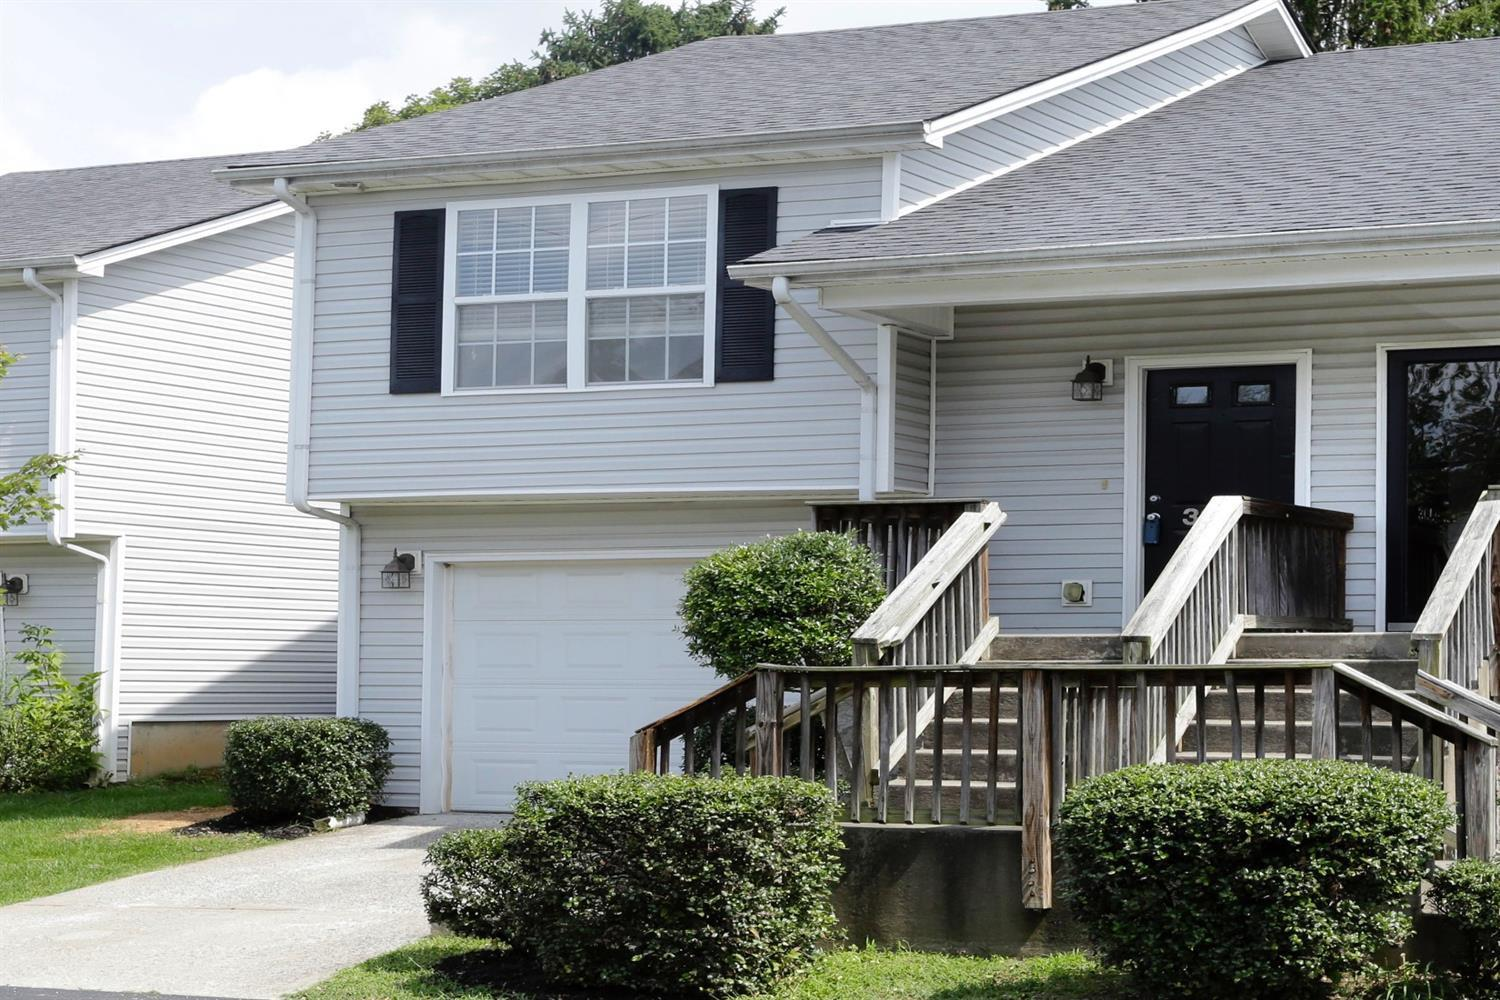 Immaculate%20townhome%20located%20on%20a%20culdesac%20with%20NEW%20Paint%20&%20NEW%20Stainmaster%20Carpet%20&%20pad%20conveniently%20located%20close%20to%20New%20Circle%20Rd,%20downtown,%20&%20UK!%20%20Looking%20for%20a%20great%20starter%20home%20with%20low%20maintenance?%20%20Look%20no%20further!%20%20You'll%20love%20the%20neutral%20decor,%20open%20floorplan,%20laminate%20wood%20flooring,%20vaulted%20ceilings,%20plantation%20style%20blinds,%20and%20spacious%20kitchen%20with%20all%20Frigidaire%20appliances%20conveying%20to%20buyer%20including%20refrigerator,%20range,%20microwave,%20disposal,%20and%20dishwasher.%20%20As%20an%20added%20bonus,%20the%20washer%20&%20dryer%20also%20convey!%20%20This%20home%20features%20two%20spacious%20bedrooms%20with%20attached%20full%20baths%20and%20walk-in%20closets%20as%20well%20as%20a%20half%20bathroom%20for%20guests.%20The%20HOA%20fee%20covers%20roofs/gutters,%20lawn%20maintenance,%20snow%20removal%20on%20roads,%20and%20swimming%20pool/pool%20house.%20%20Hurry%20to%20schedule%20your%20showing%20today!